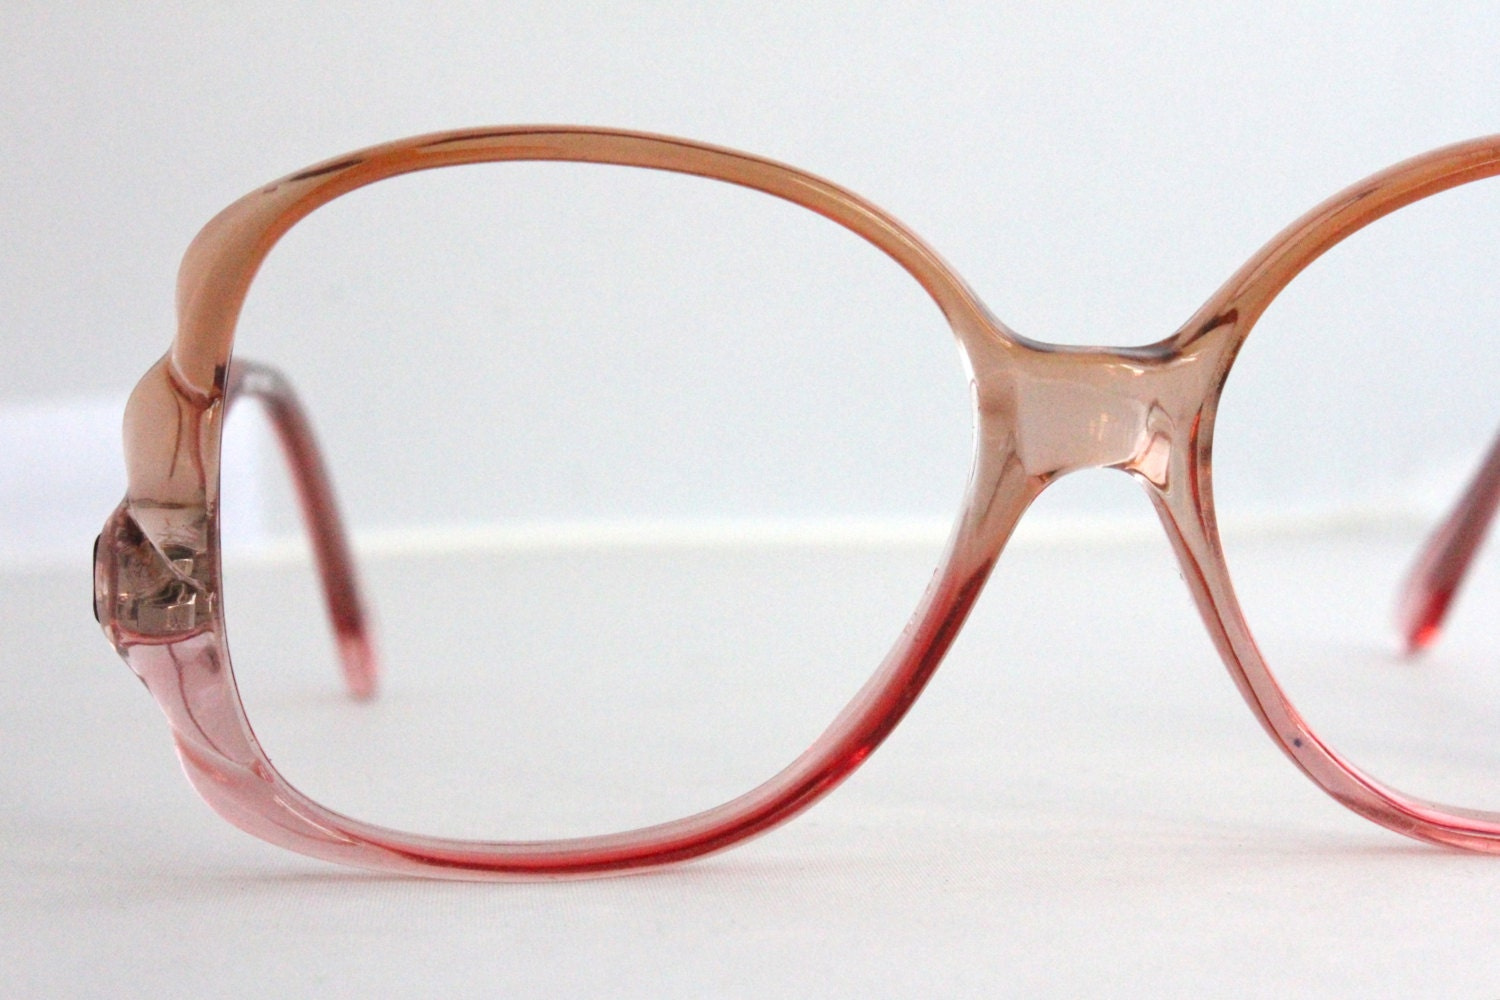 Glasses Frames With Removable Arms : Vintage Oversized Watermelon Drop Arm Eyeglasses Frames